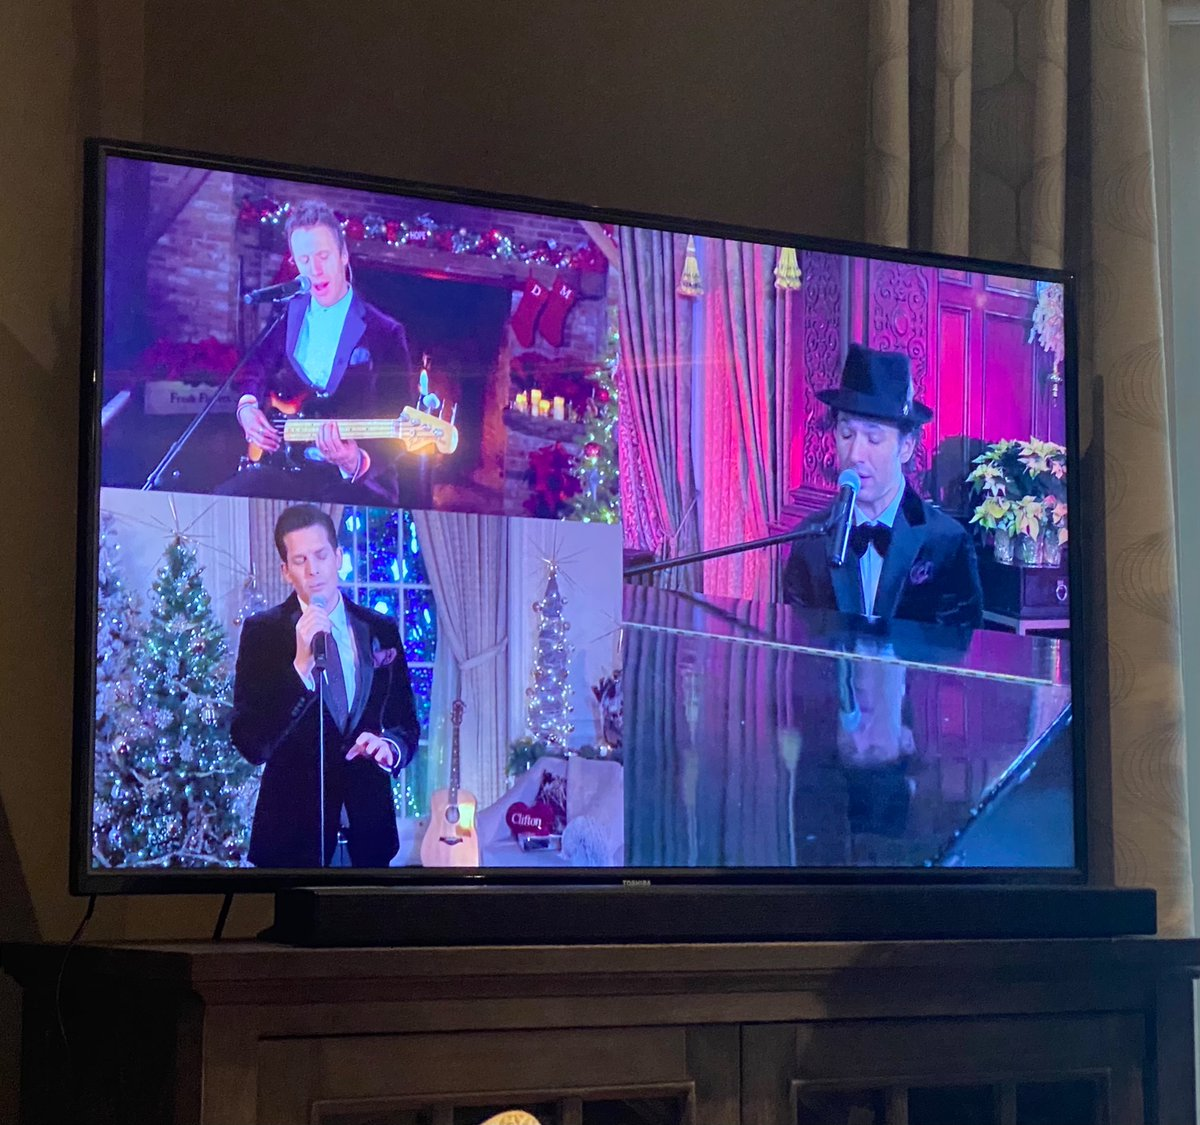 test Twitter Media - Thank you @TenorsMusic for your virtual concert this year. We hope to be able to see it live again next Christmas but it was very special to the family to be able to watch in this way as well. https://t.co/VvrxUX2QRJ